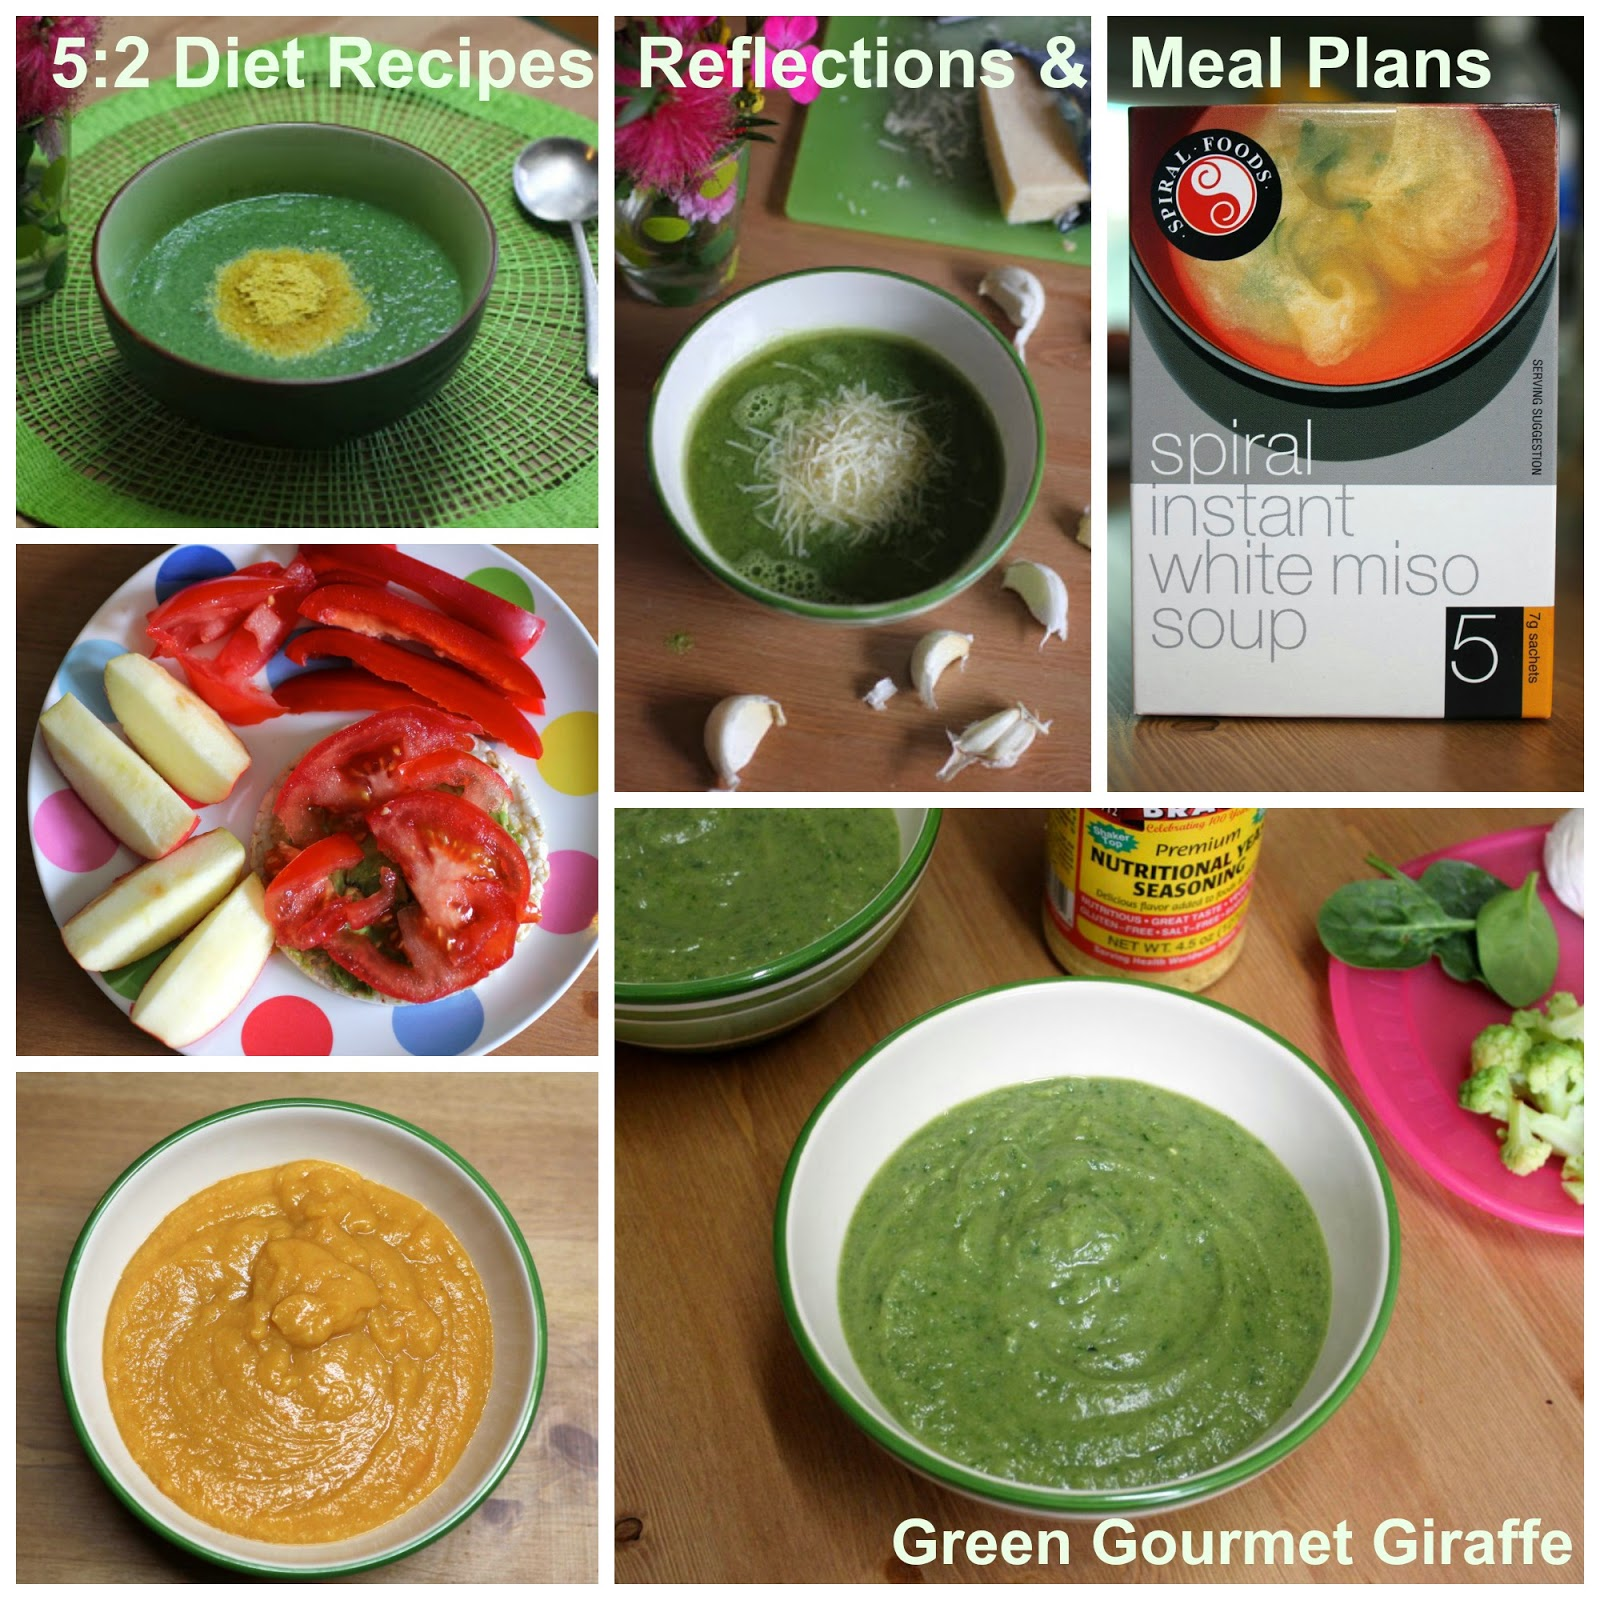 Green gourmet giraffe 52 diet vegetarian meal plans reflections 52 diet vegetarian meal plans reflections and recipes forumfinder Gallery